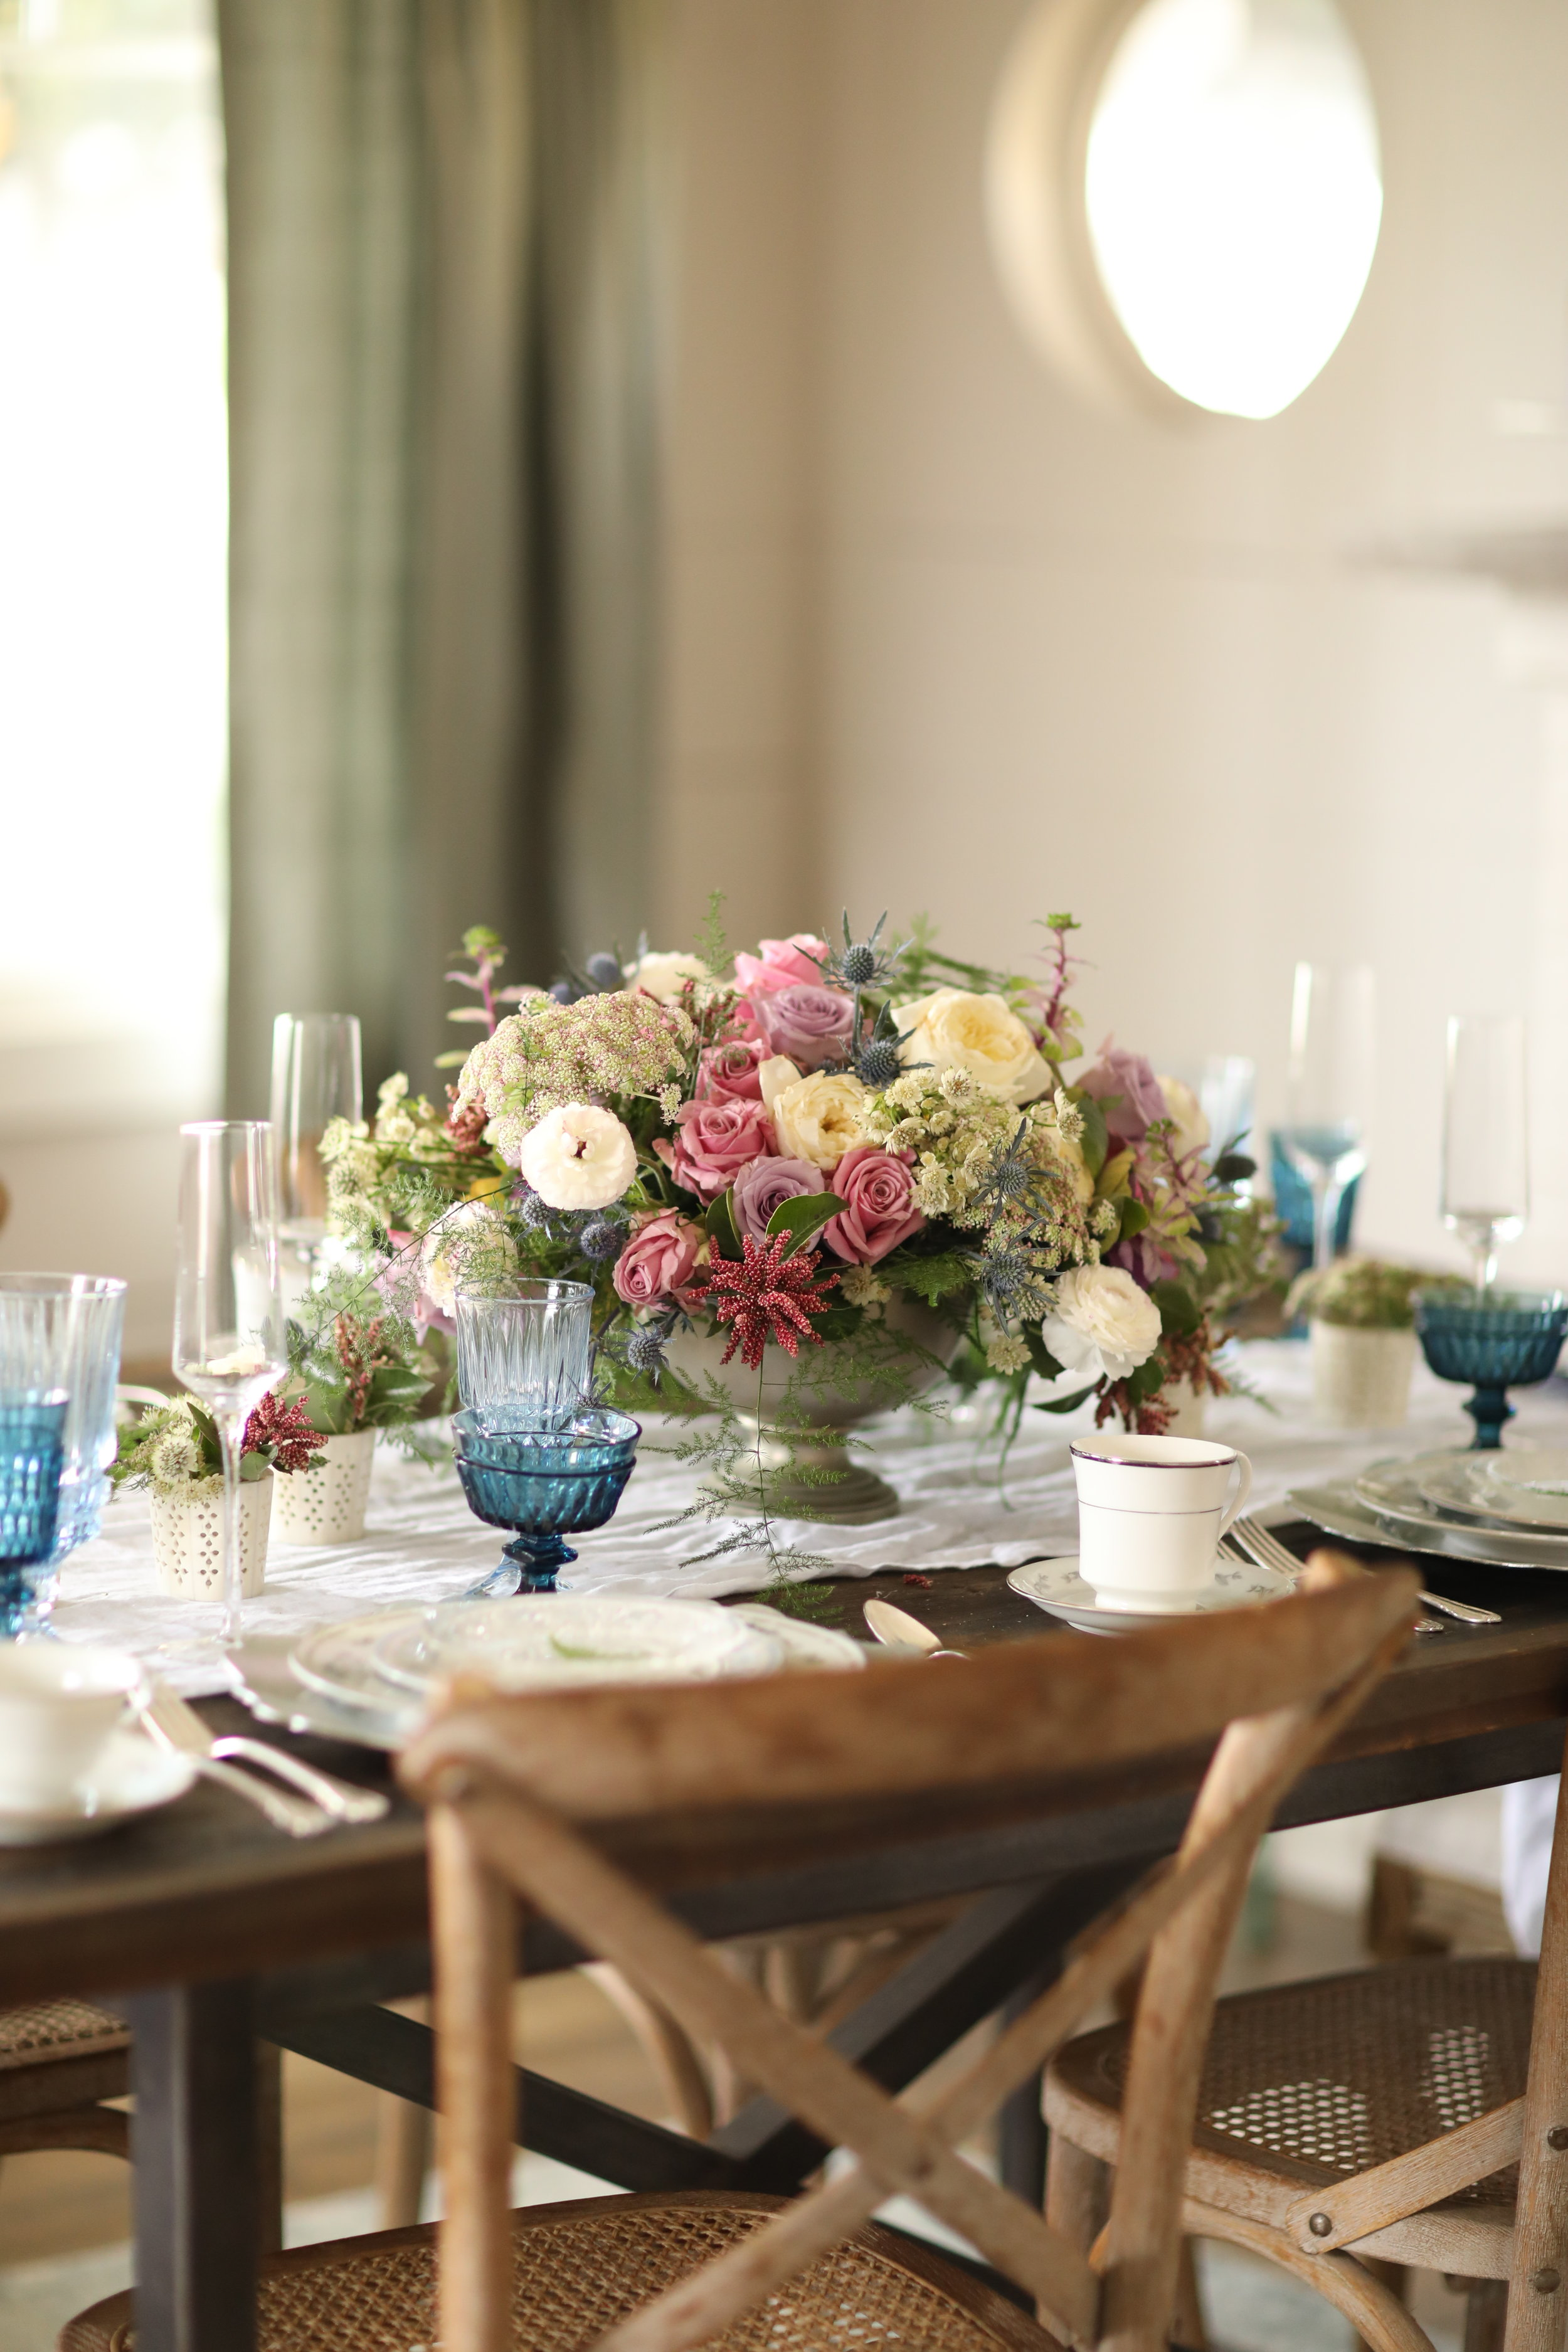 Table setting with blue goblets and vintage mismatched china on top of ceramic charger plates.